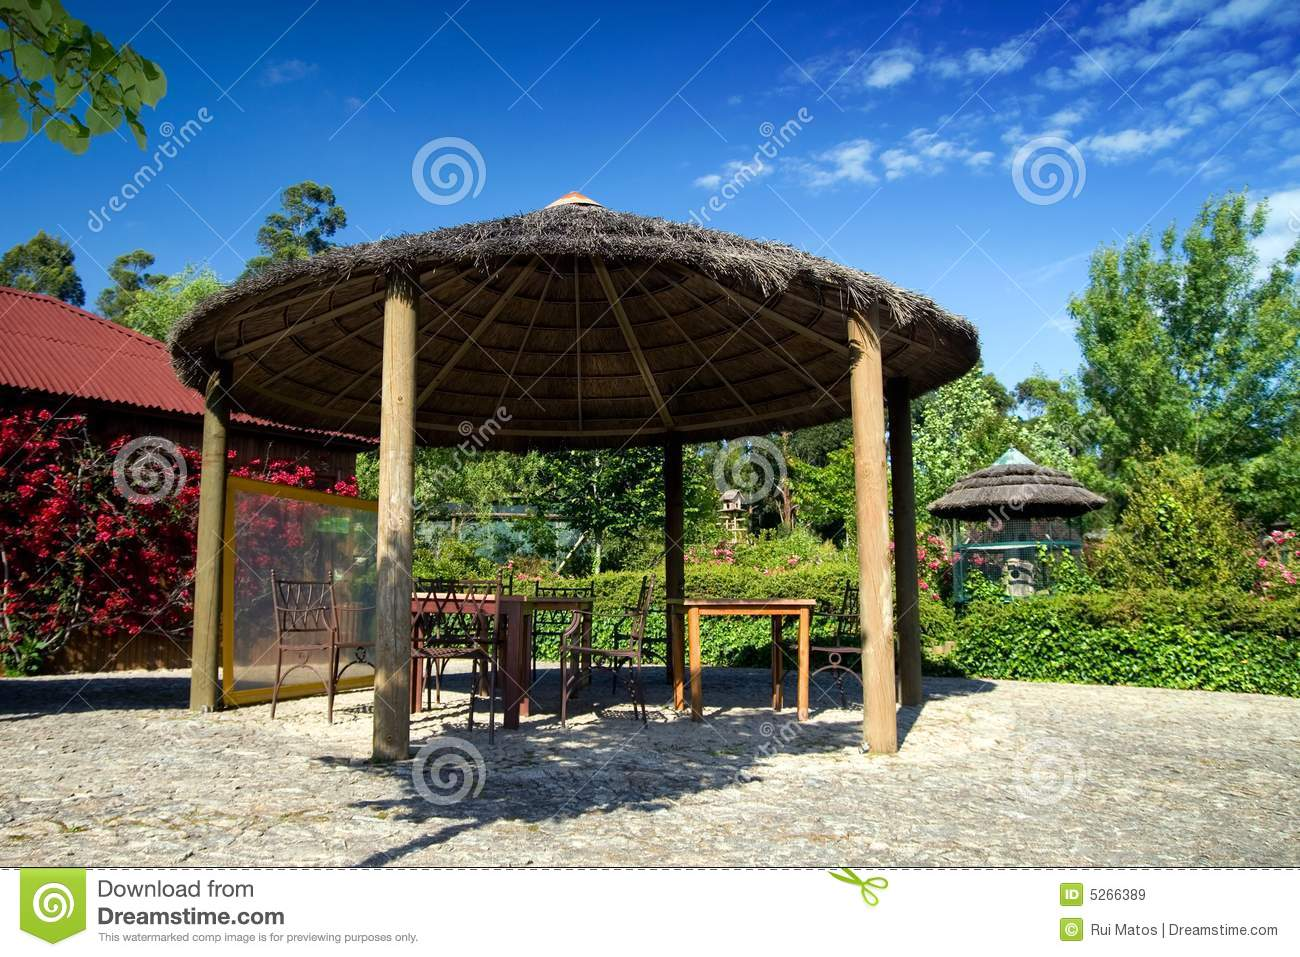 parasol en bois sur un jardin de ressource images libres de droits image 5266389. Black Bedroom Furniture Sets. Home Design Ideas